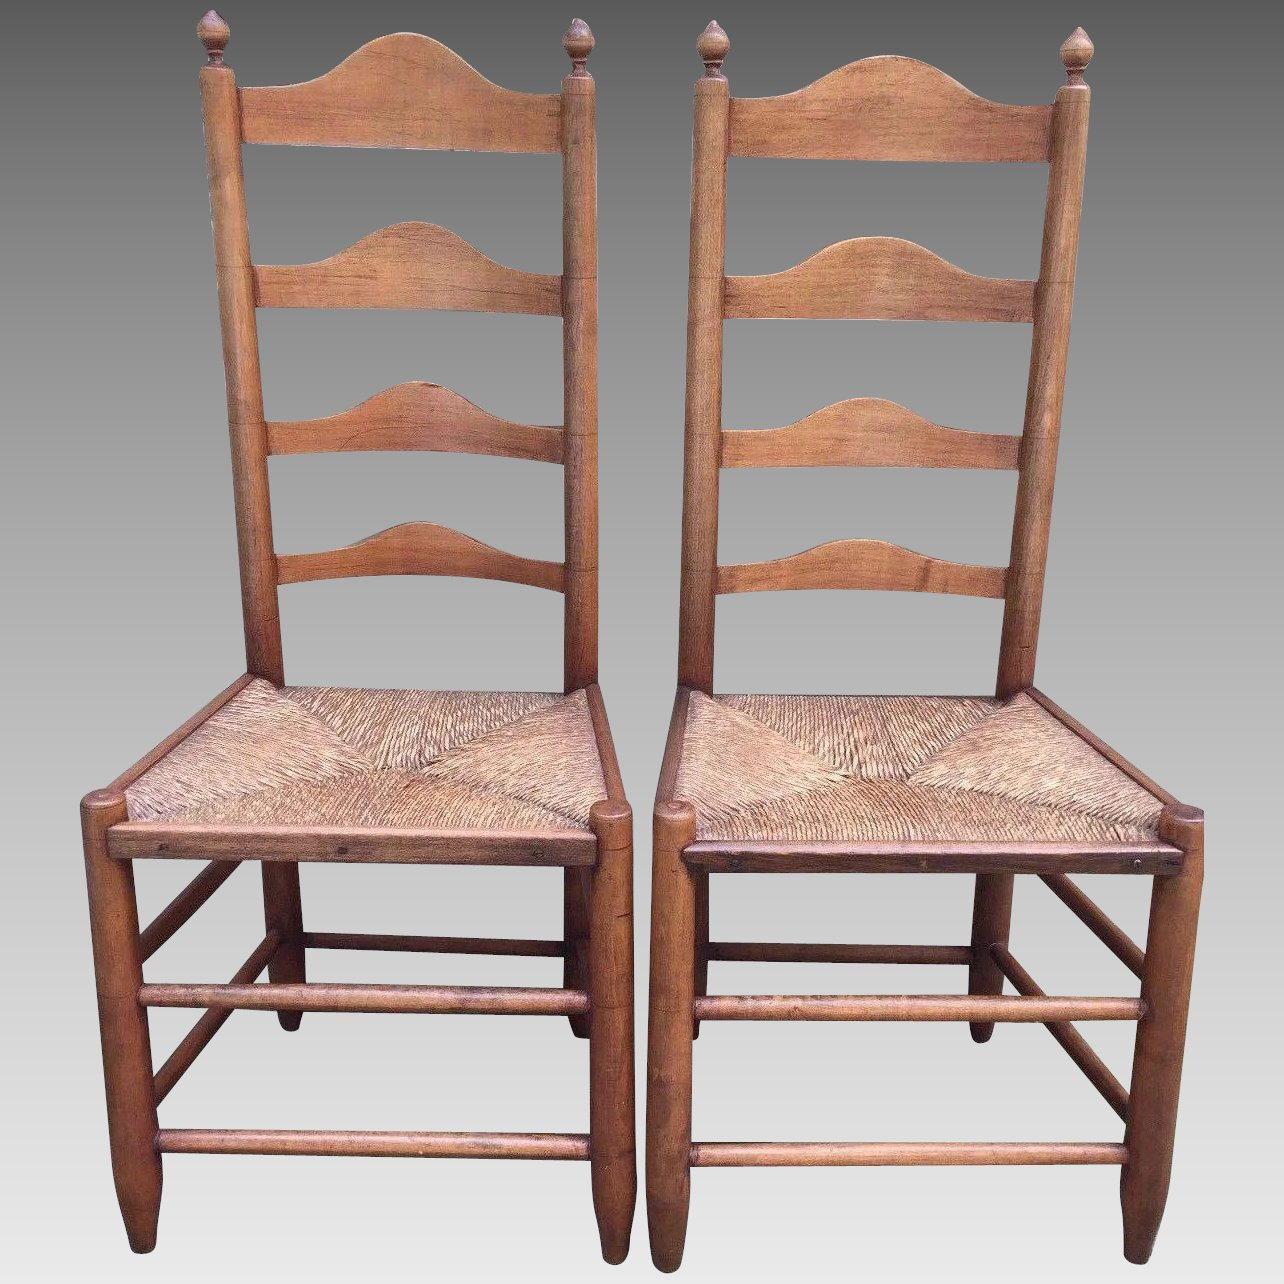 Click to expand - Antique Pair Of 18th Century Ladderback Chairs Rush Seats American